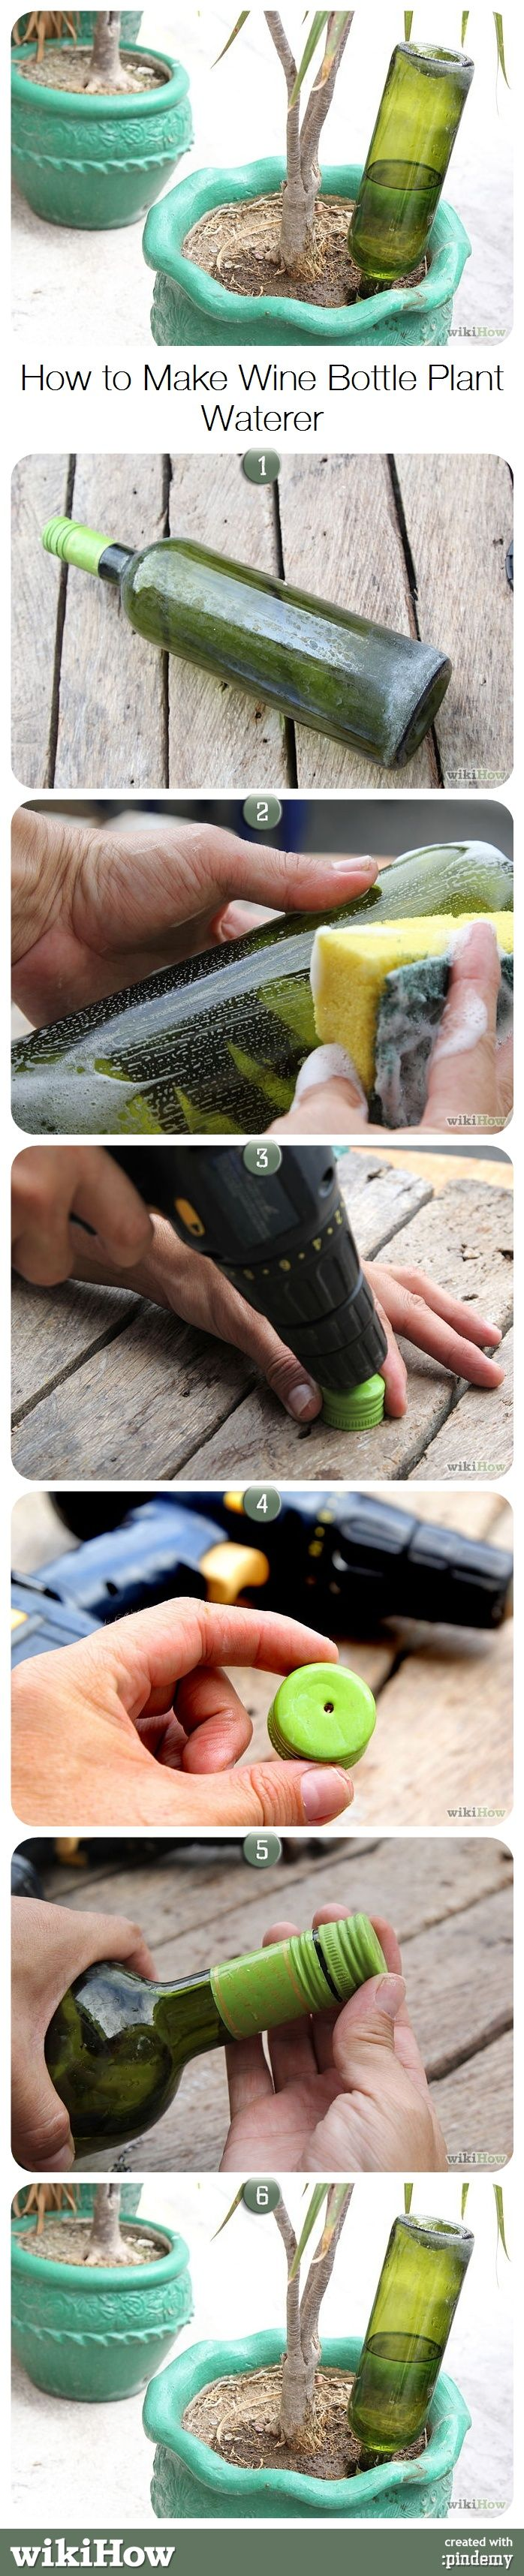 How to Make Wine Bottle Plant Waterer, from wikiHow.com great idea tot avoid the platics